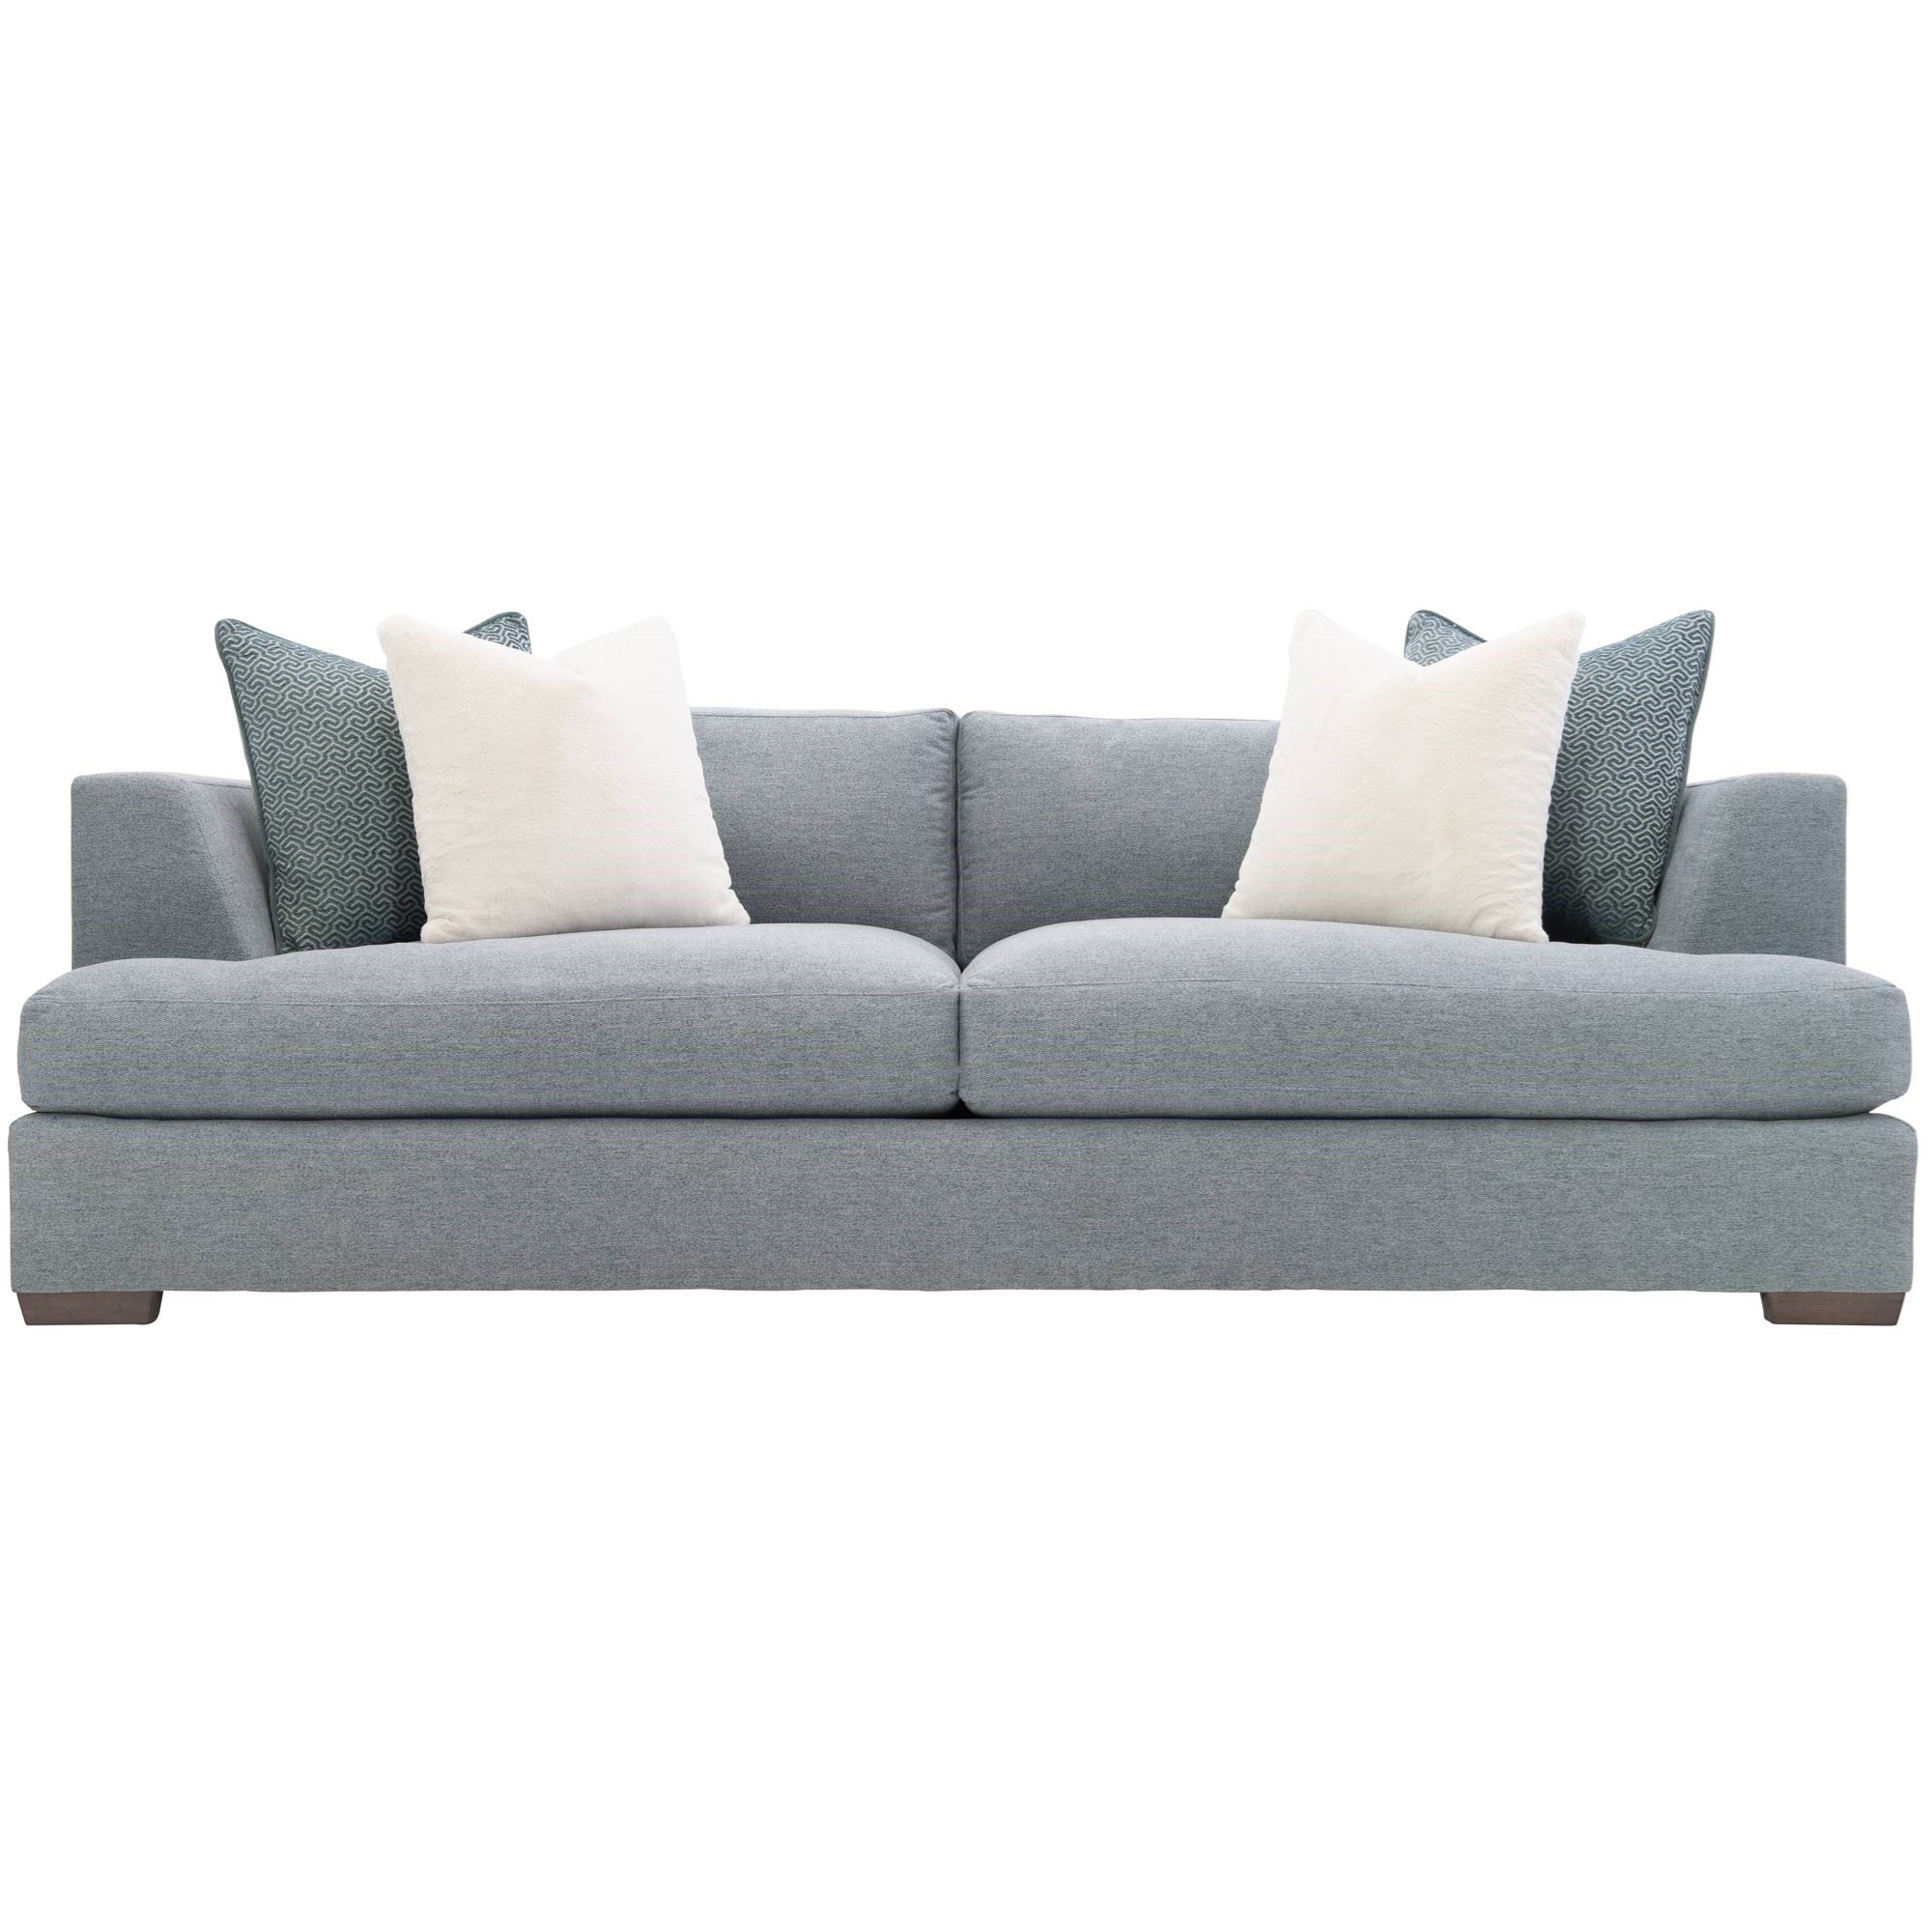 Giselle Sofa at Williams & Kay